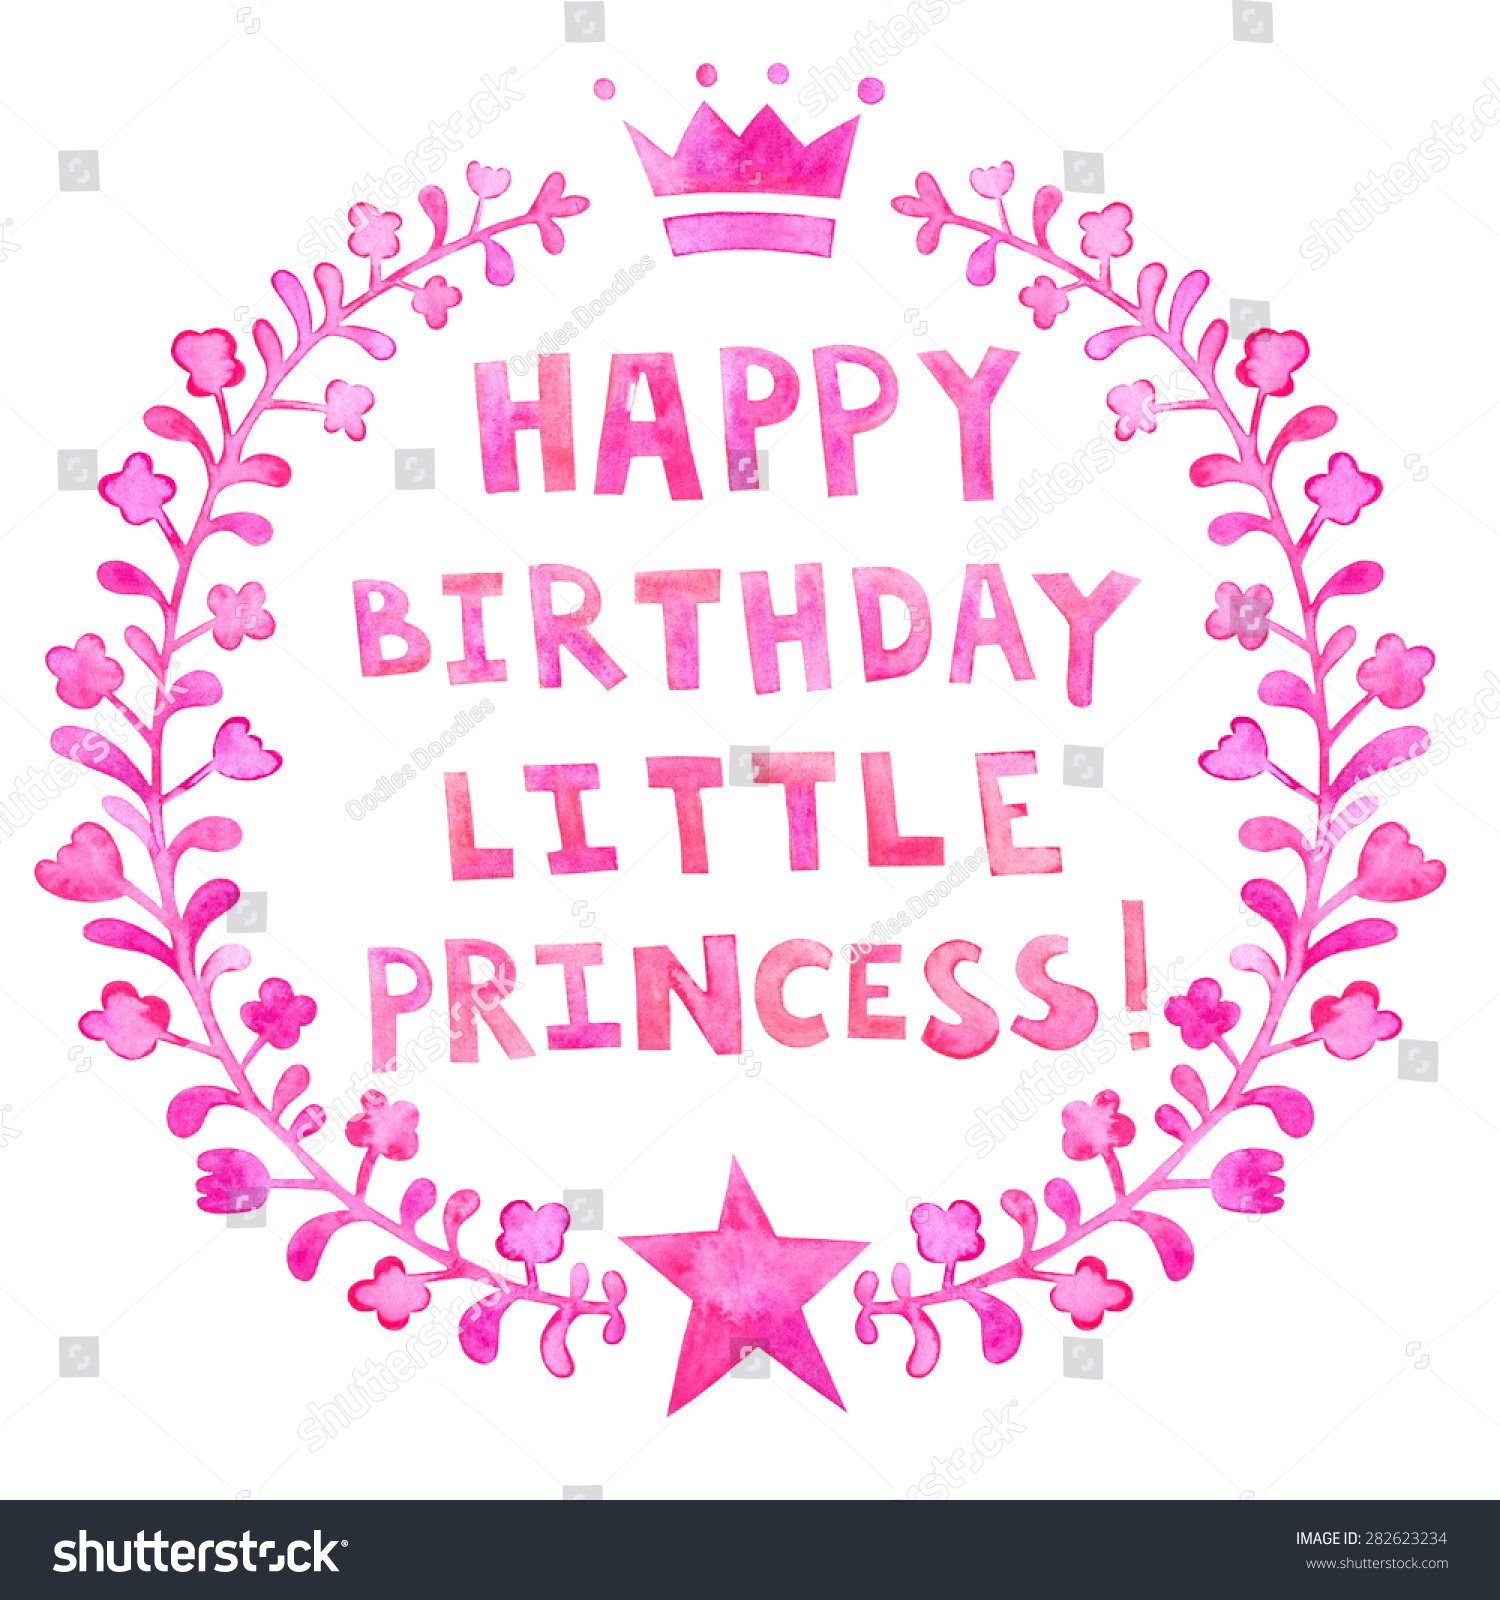 happy birthday little princess